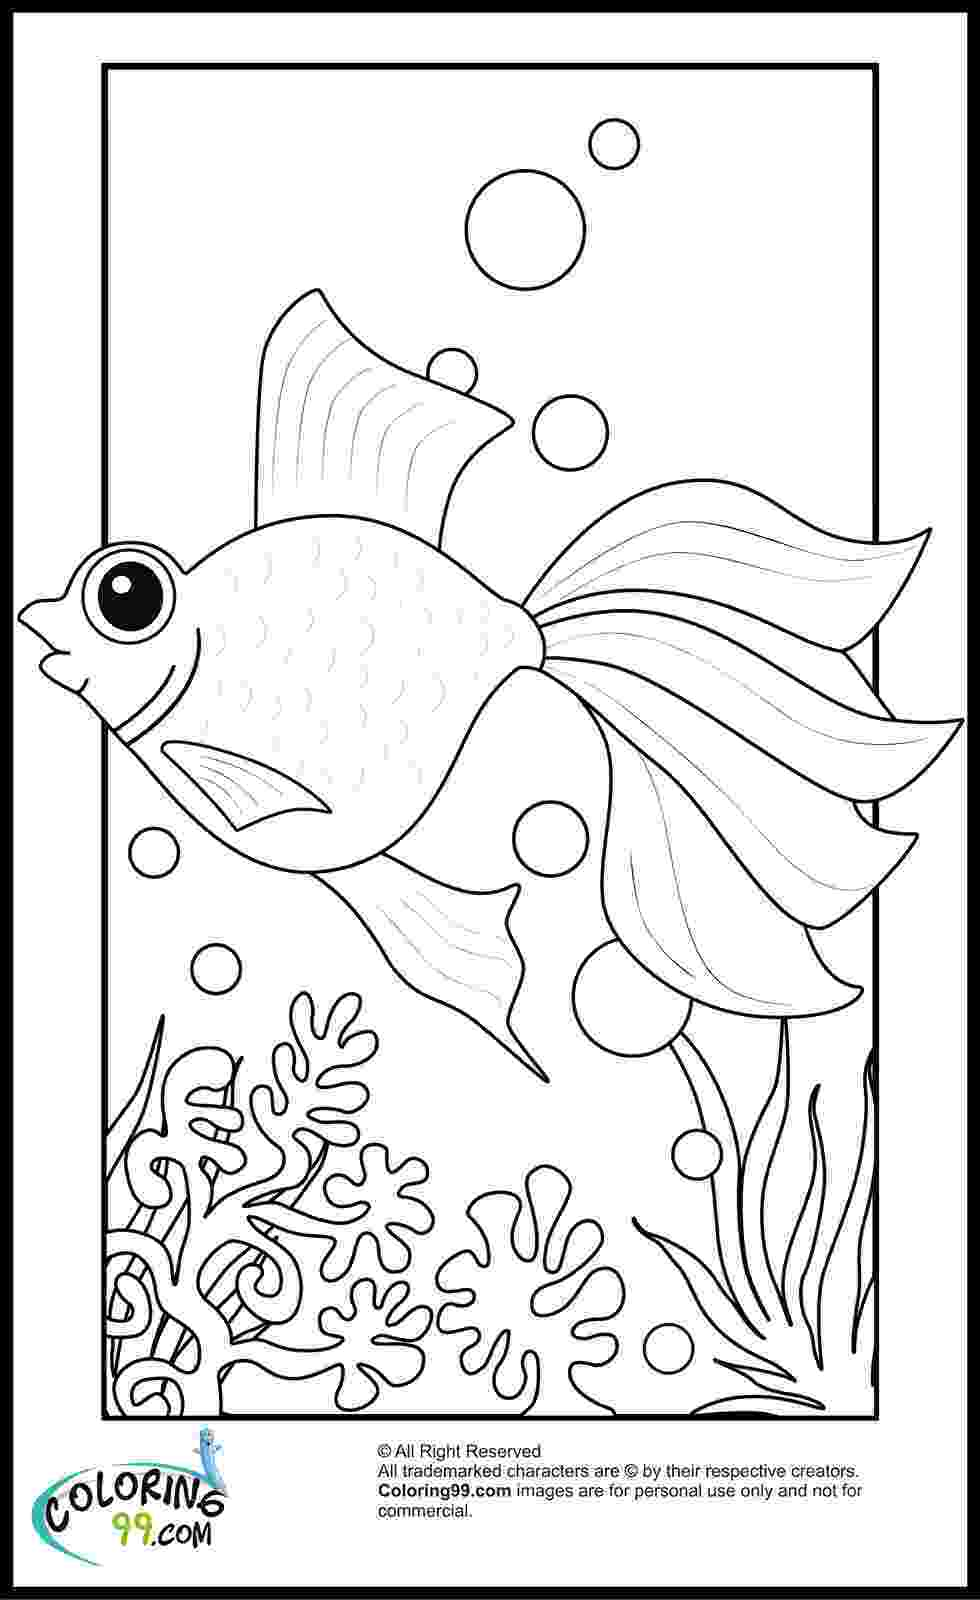 coloring pages of goldfish free printable goldfish coloring pages for kids coloring pages goldfish of